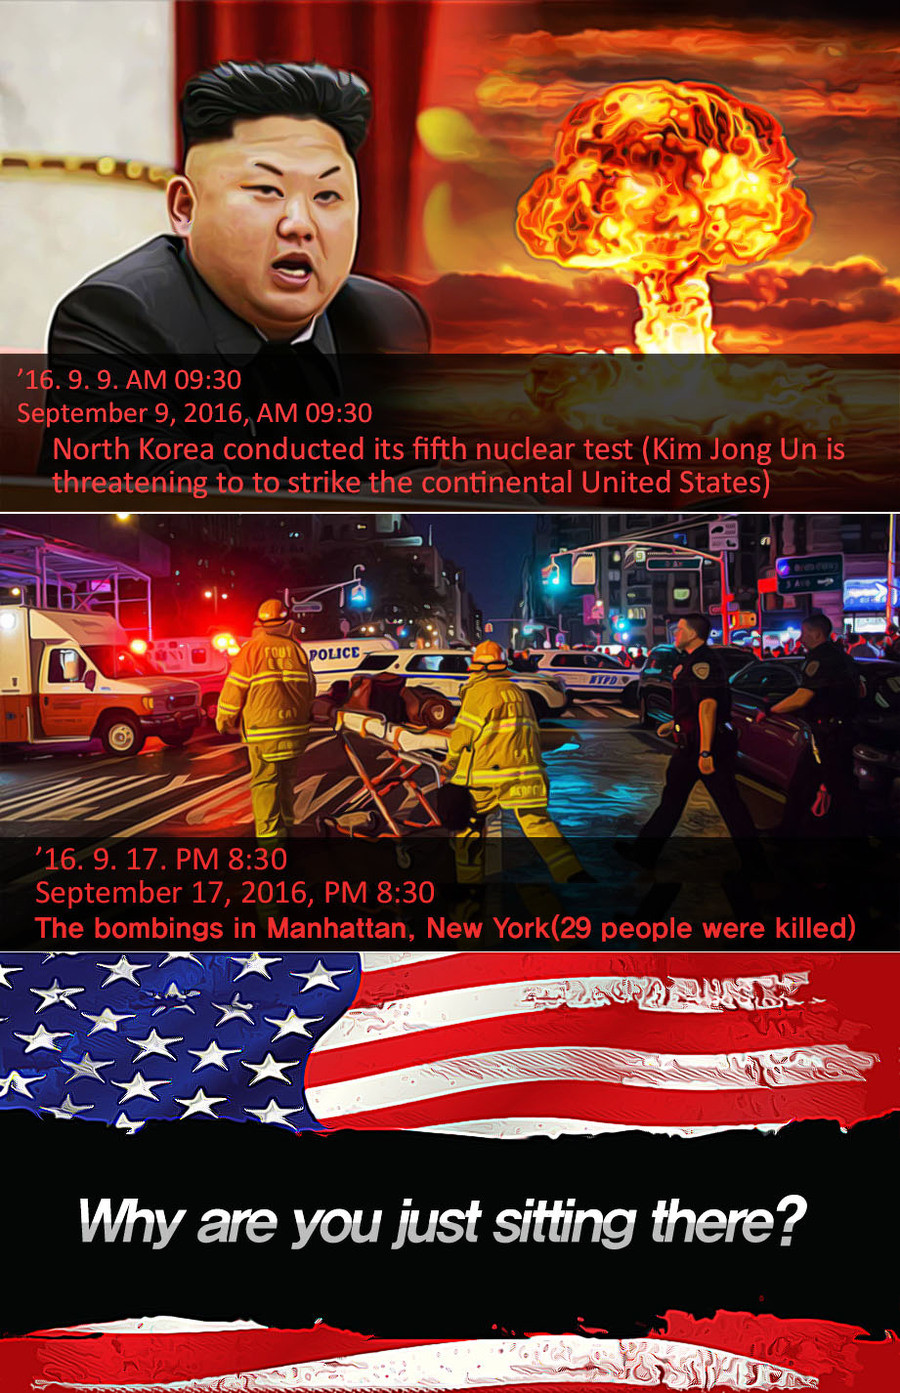 Before Nov.8. .. Some crazy going on in South Korea right now if some didn't know, almost as crazy as the stuff in America right now...